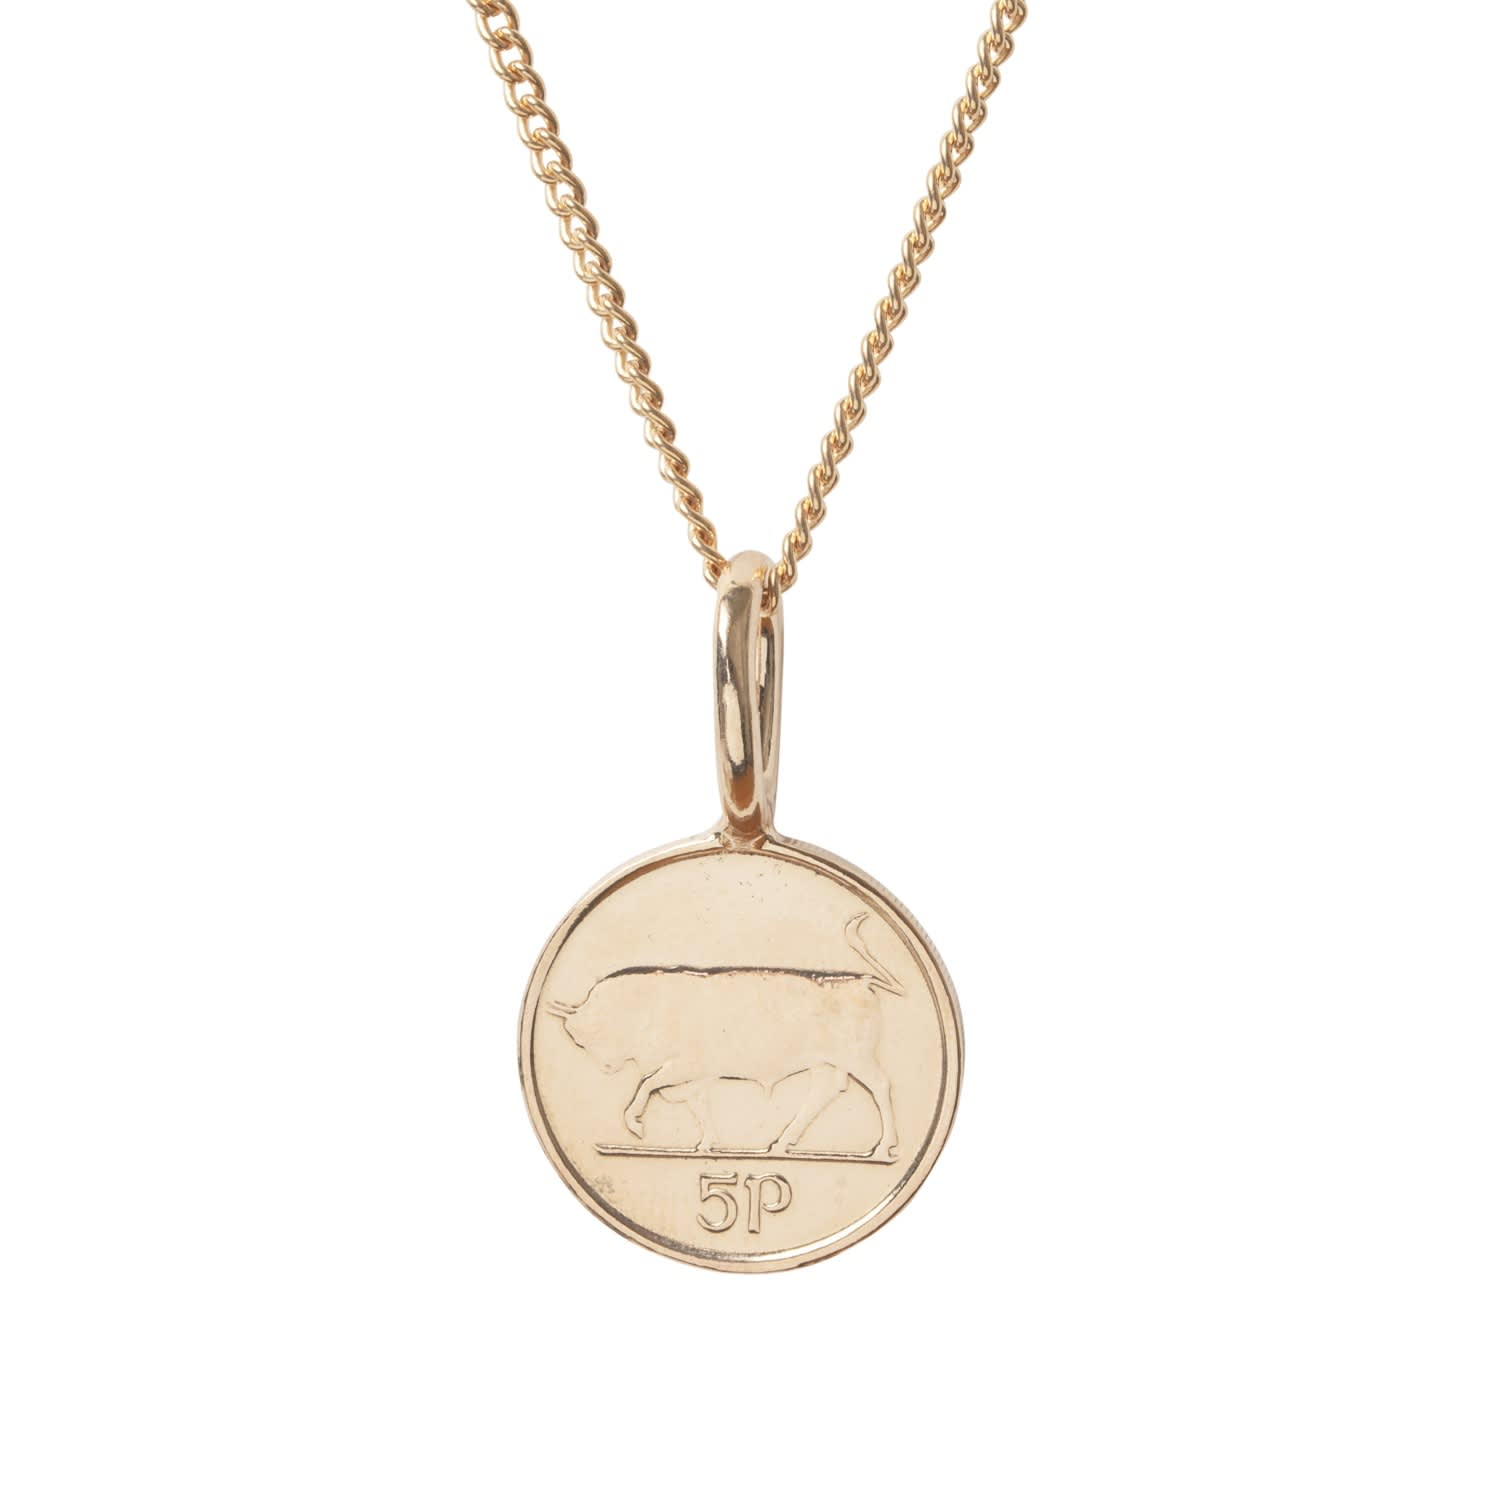 Irish 5p Coin Necklace in Rose Gold by Katie Mullally